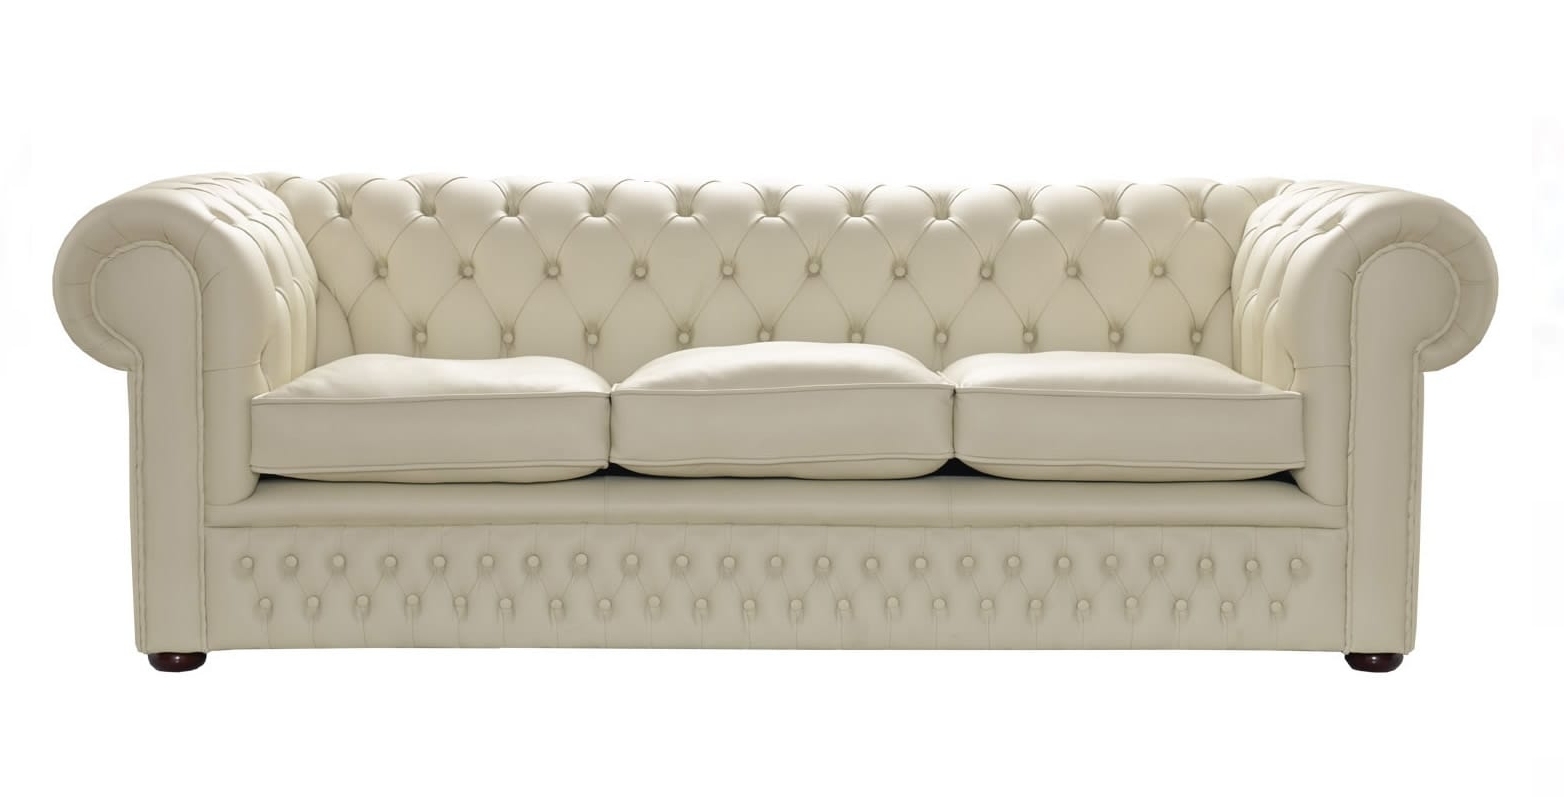 Leather Chesterfield Sofas Within Best And Newest Cream Leather Chesterfield Sofa, Handcrafted In The Uk (View 8 of 15)